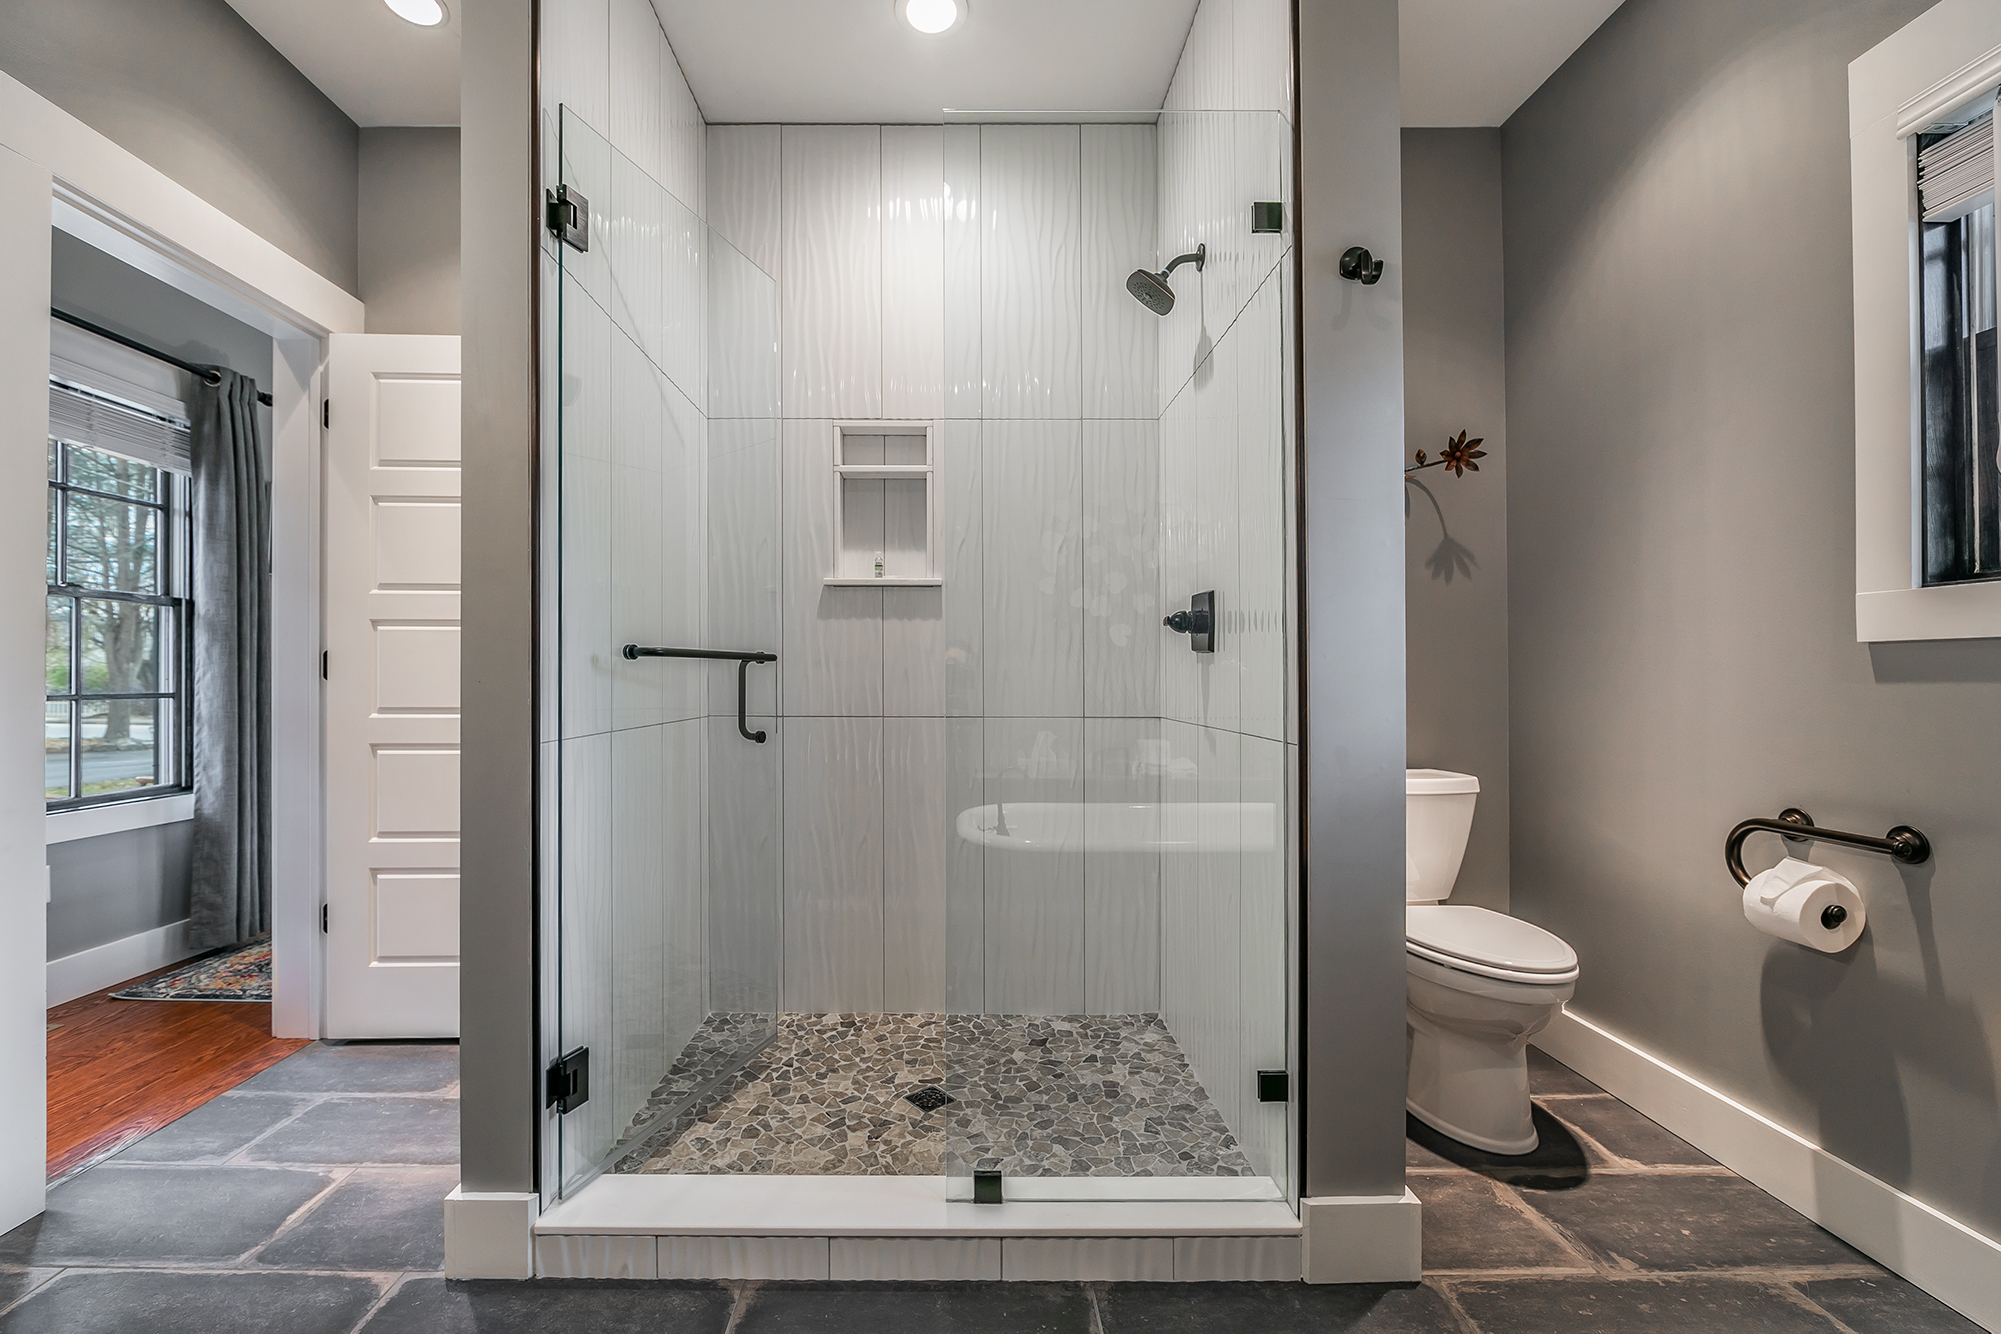 Copy of Bathroom4.jpg